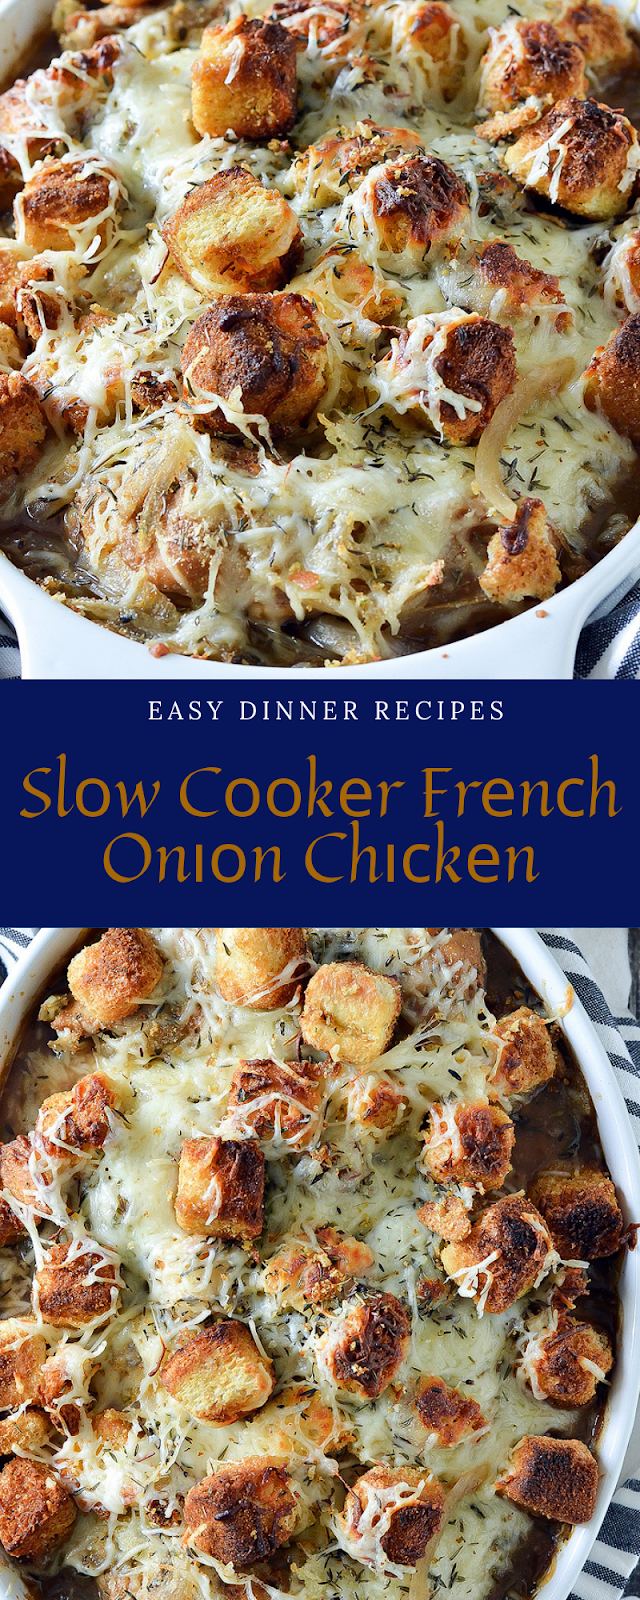 Easy Dinner Recipes | Slоw Cооkеr Frеnсh Onіоn Chісkеn | Easy dinner recipes, Food recipes, Baked chicken recipes, Chicken casserole recipes, Chicken breastrecipes, dinner recipes healthy, Easy dinner recipes, Healthy meals, Easy healthy dinner, #recipes,#dinnerforfamily, #dinnerfortwo, #delicious, #yummy, #slowcooker, #chickenrecipe, #frenchonionchicken, #chickenbreastrecipeseasy Easy Dinner Recipes | Slоw Cооkеr Frеnсh Onіоn Chісkеn | Easy dinner recipes, Food recipes, Ba #chickenbreastrecipeseasy